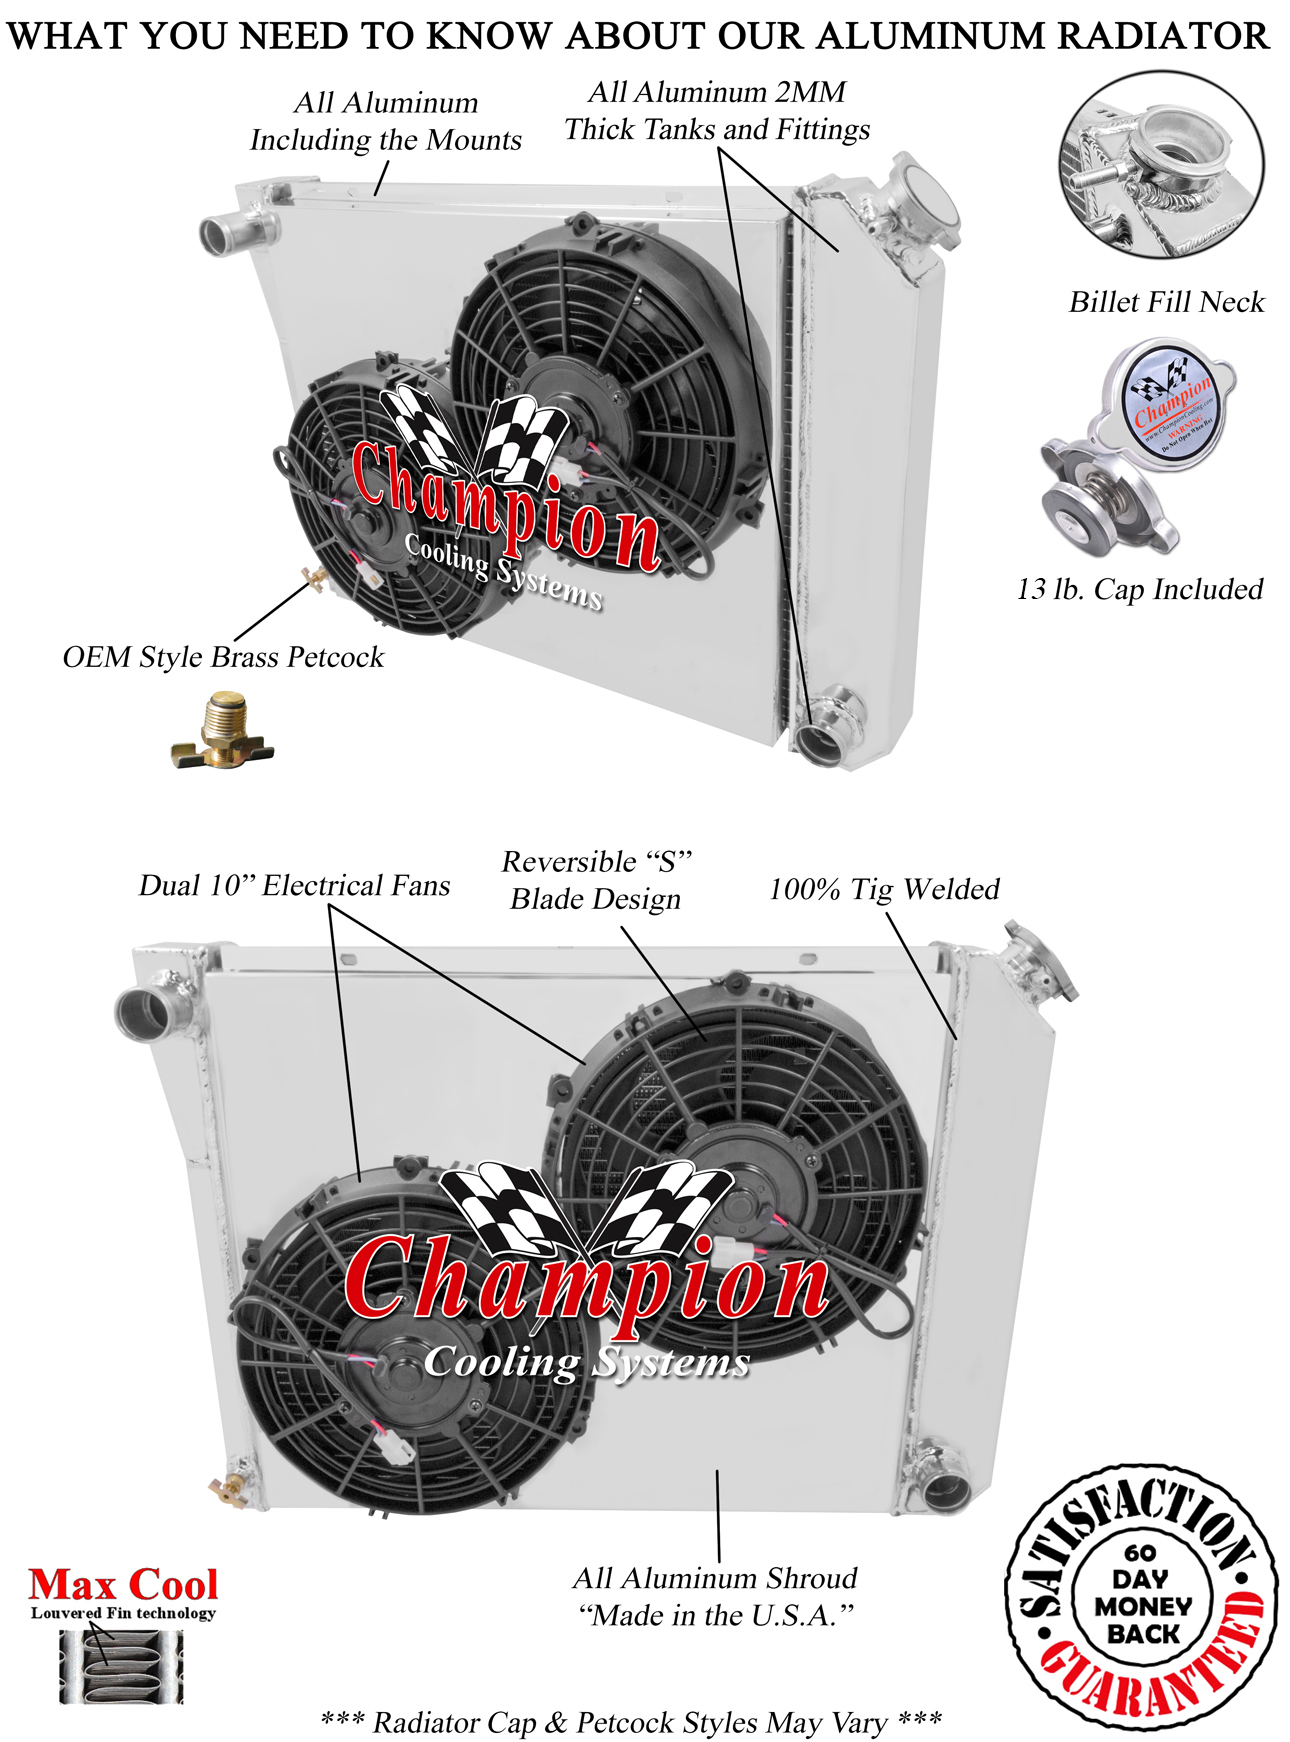 https://www.championcooling.com/photos/Photos%20White/With%20Fans/W-Shroud/571-m/2x10/571-m_2fs_d_w.jpg